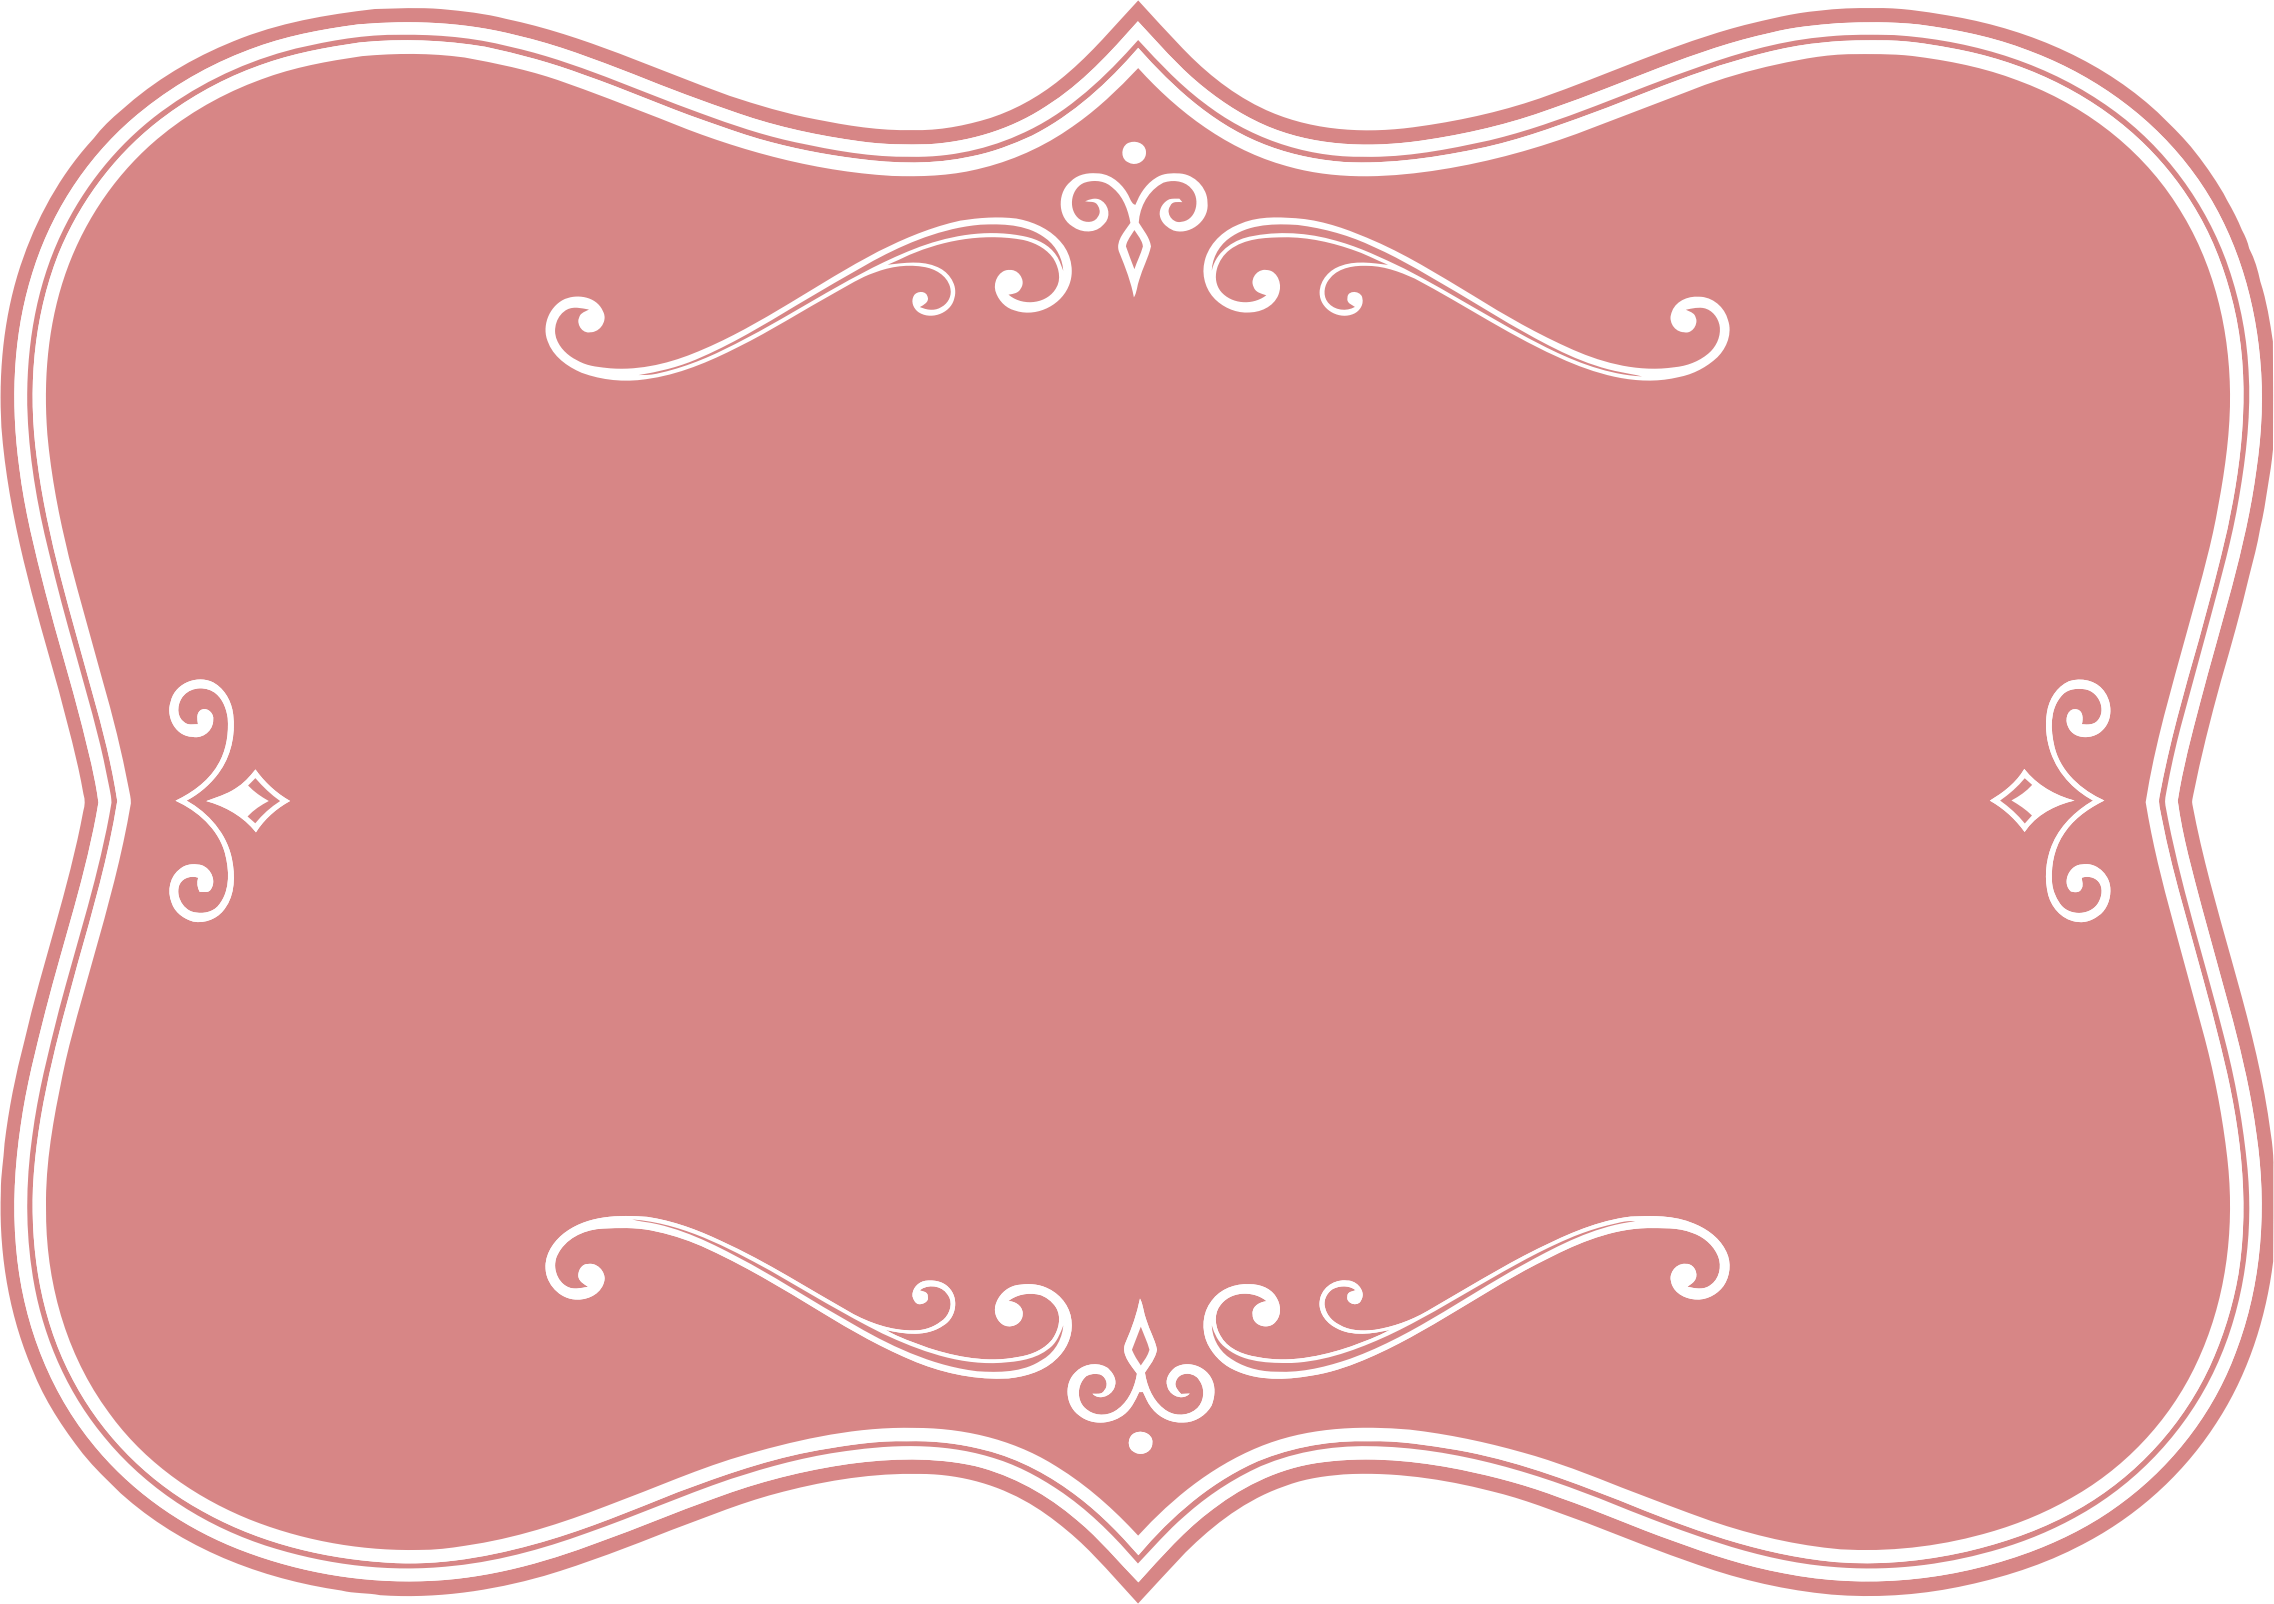 Flourishes clipart frame. Decorative pink flourish icons